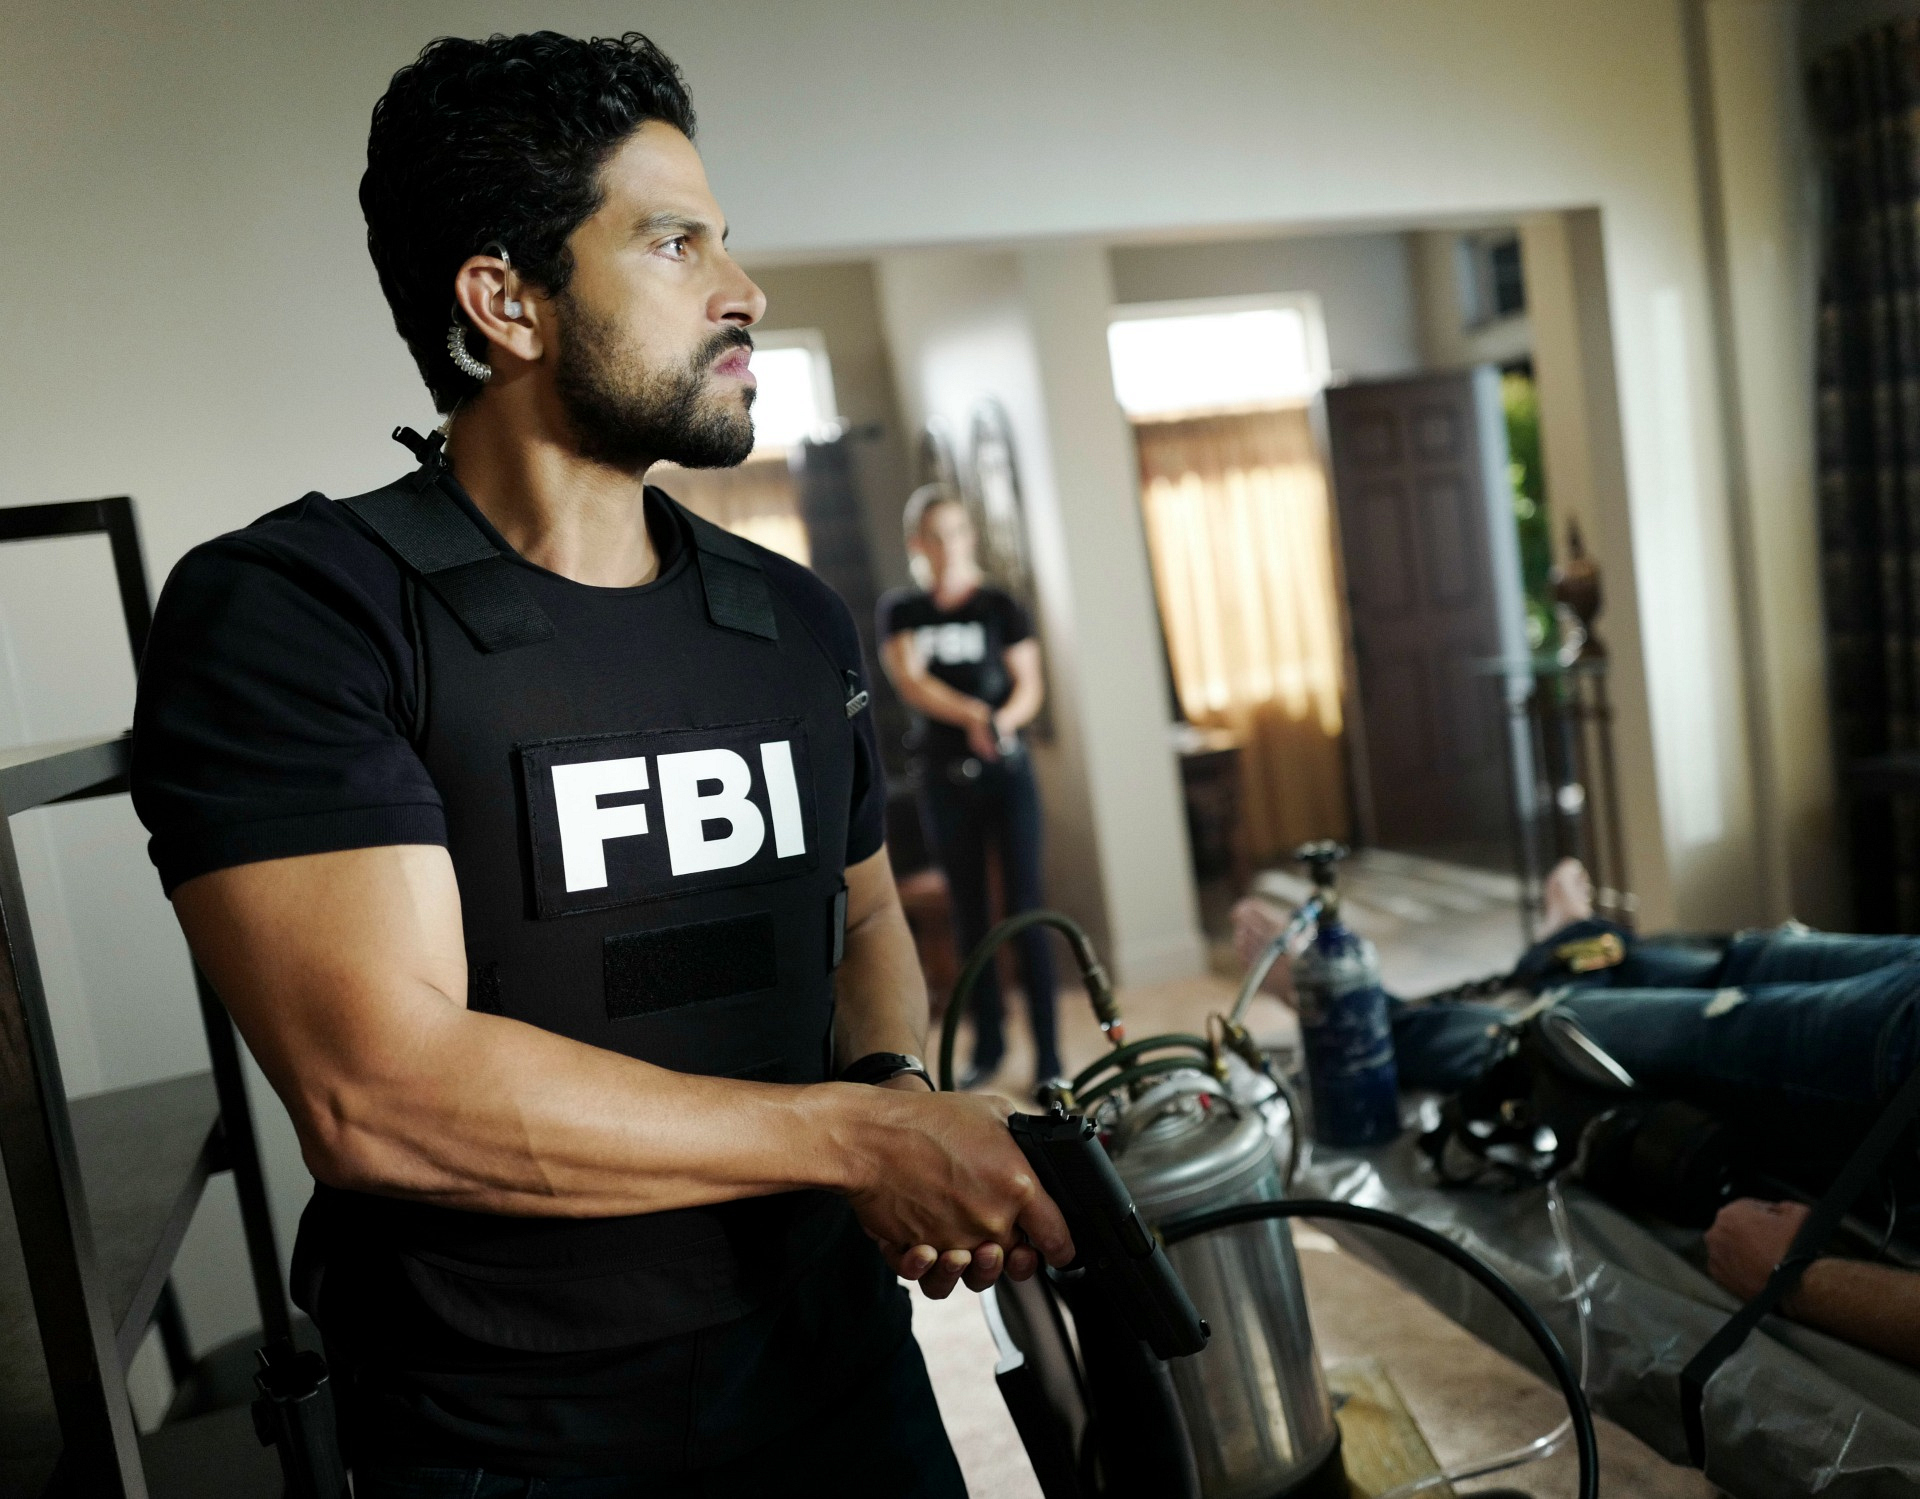 Criminal minds meet luke alvez newest member of the bau cbs more than anything rodriguez is looking forward to joining this incredible team of people when asked about his experience on set rodriguez gushed that m4hsunfo